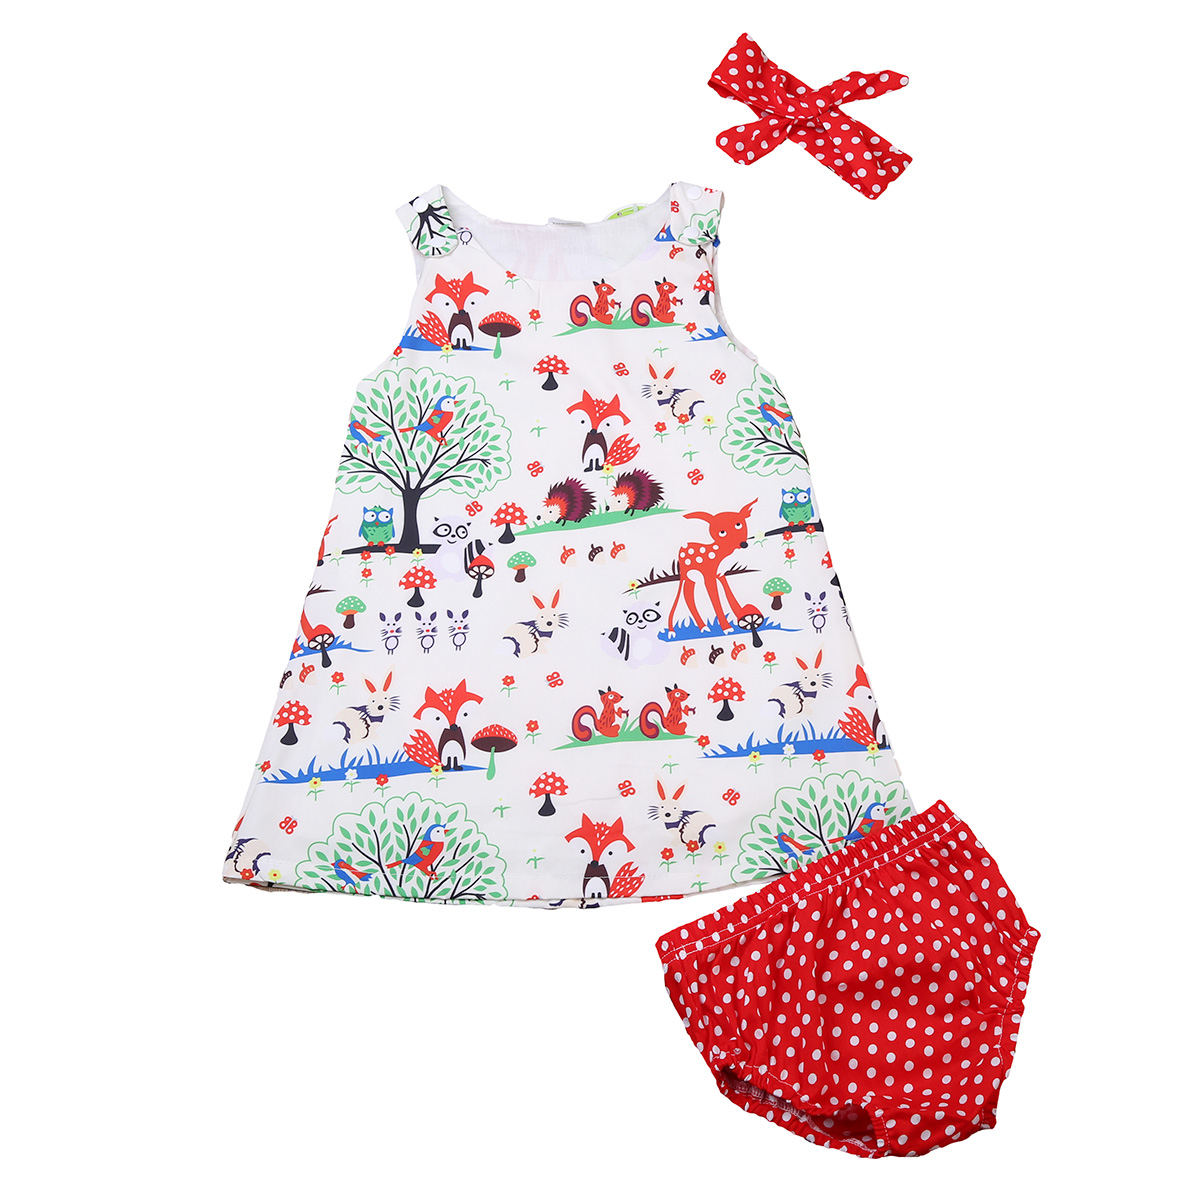 3PCS Cute Newborn Baby Girl Clothes 2017 Summer Animal Printed Dress Tops+Dots Baby Bloomers Shorts Headband Outfit Children Set 0 24m floral baby girl clothes set 2017 summer sleeveless ruffles crop tops baby bloomers shorts 2pcs outfits children sunsuit